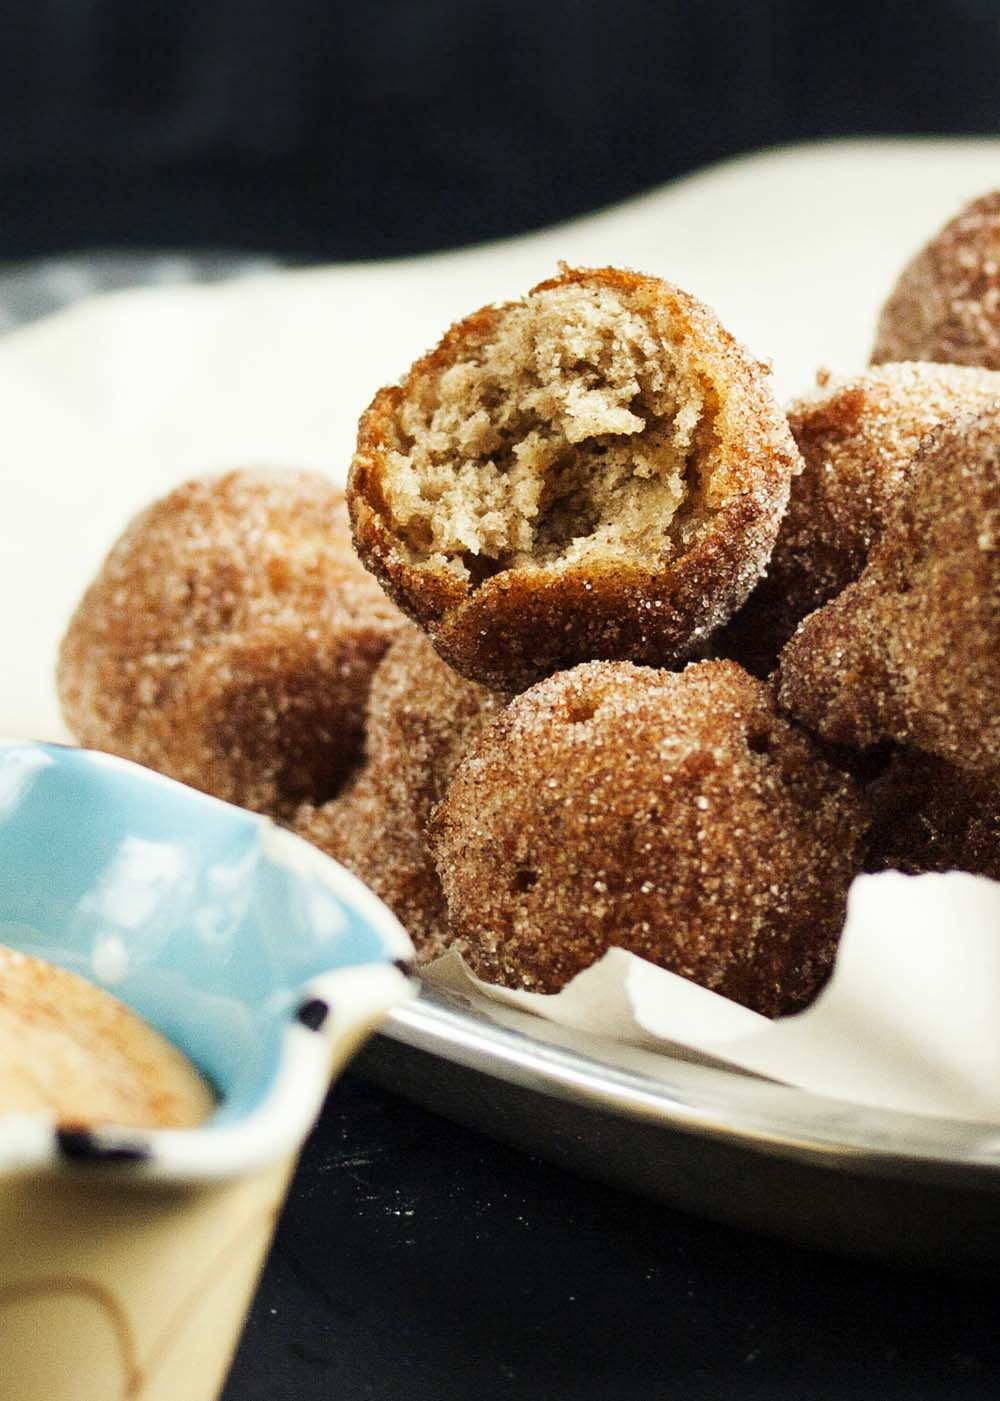 Cinnamon Sugar Apple Fritters - A snap to make, these apple fritters are little pillows of happiness full of chopped apples and covered in cinnamon sugar. And you just need one, little easy trick to turn out perfectly shaped fritters every time.   justalittlebitofbacon.com